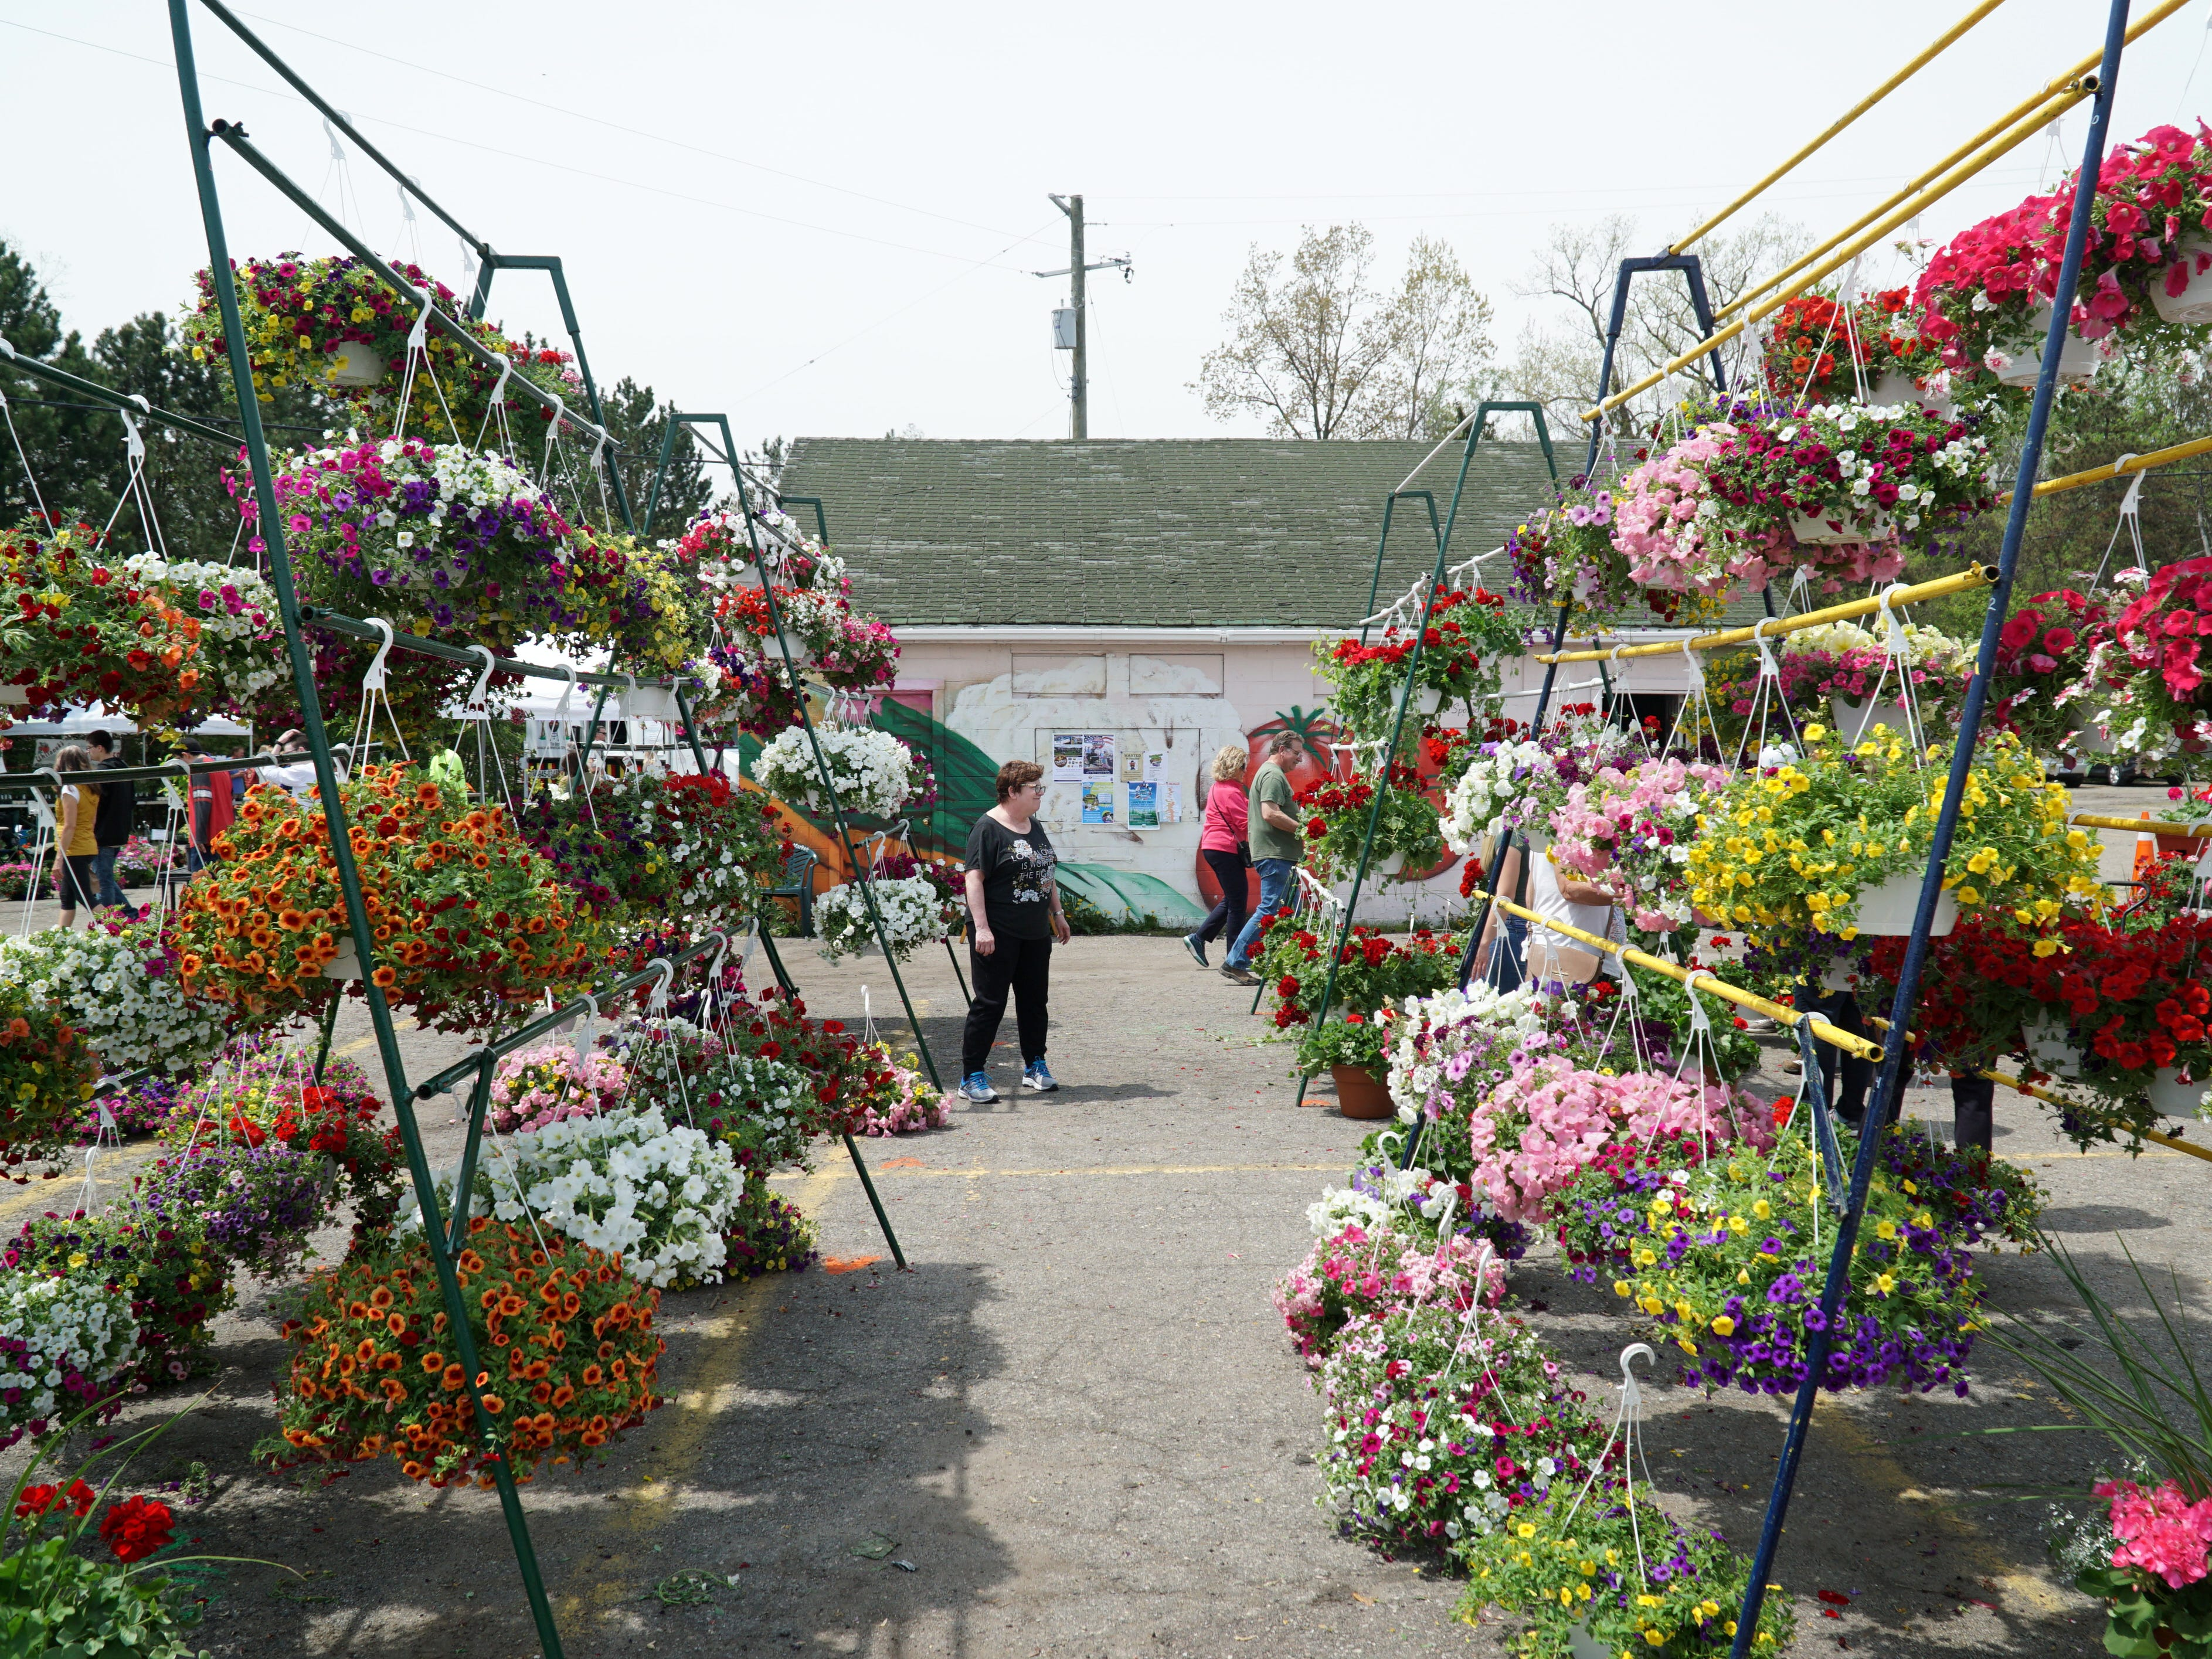 Two rows of hanging baskets for sale by a vendor at the Northville Farmers Market.